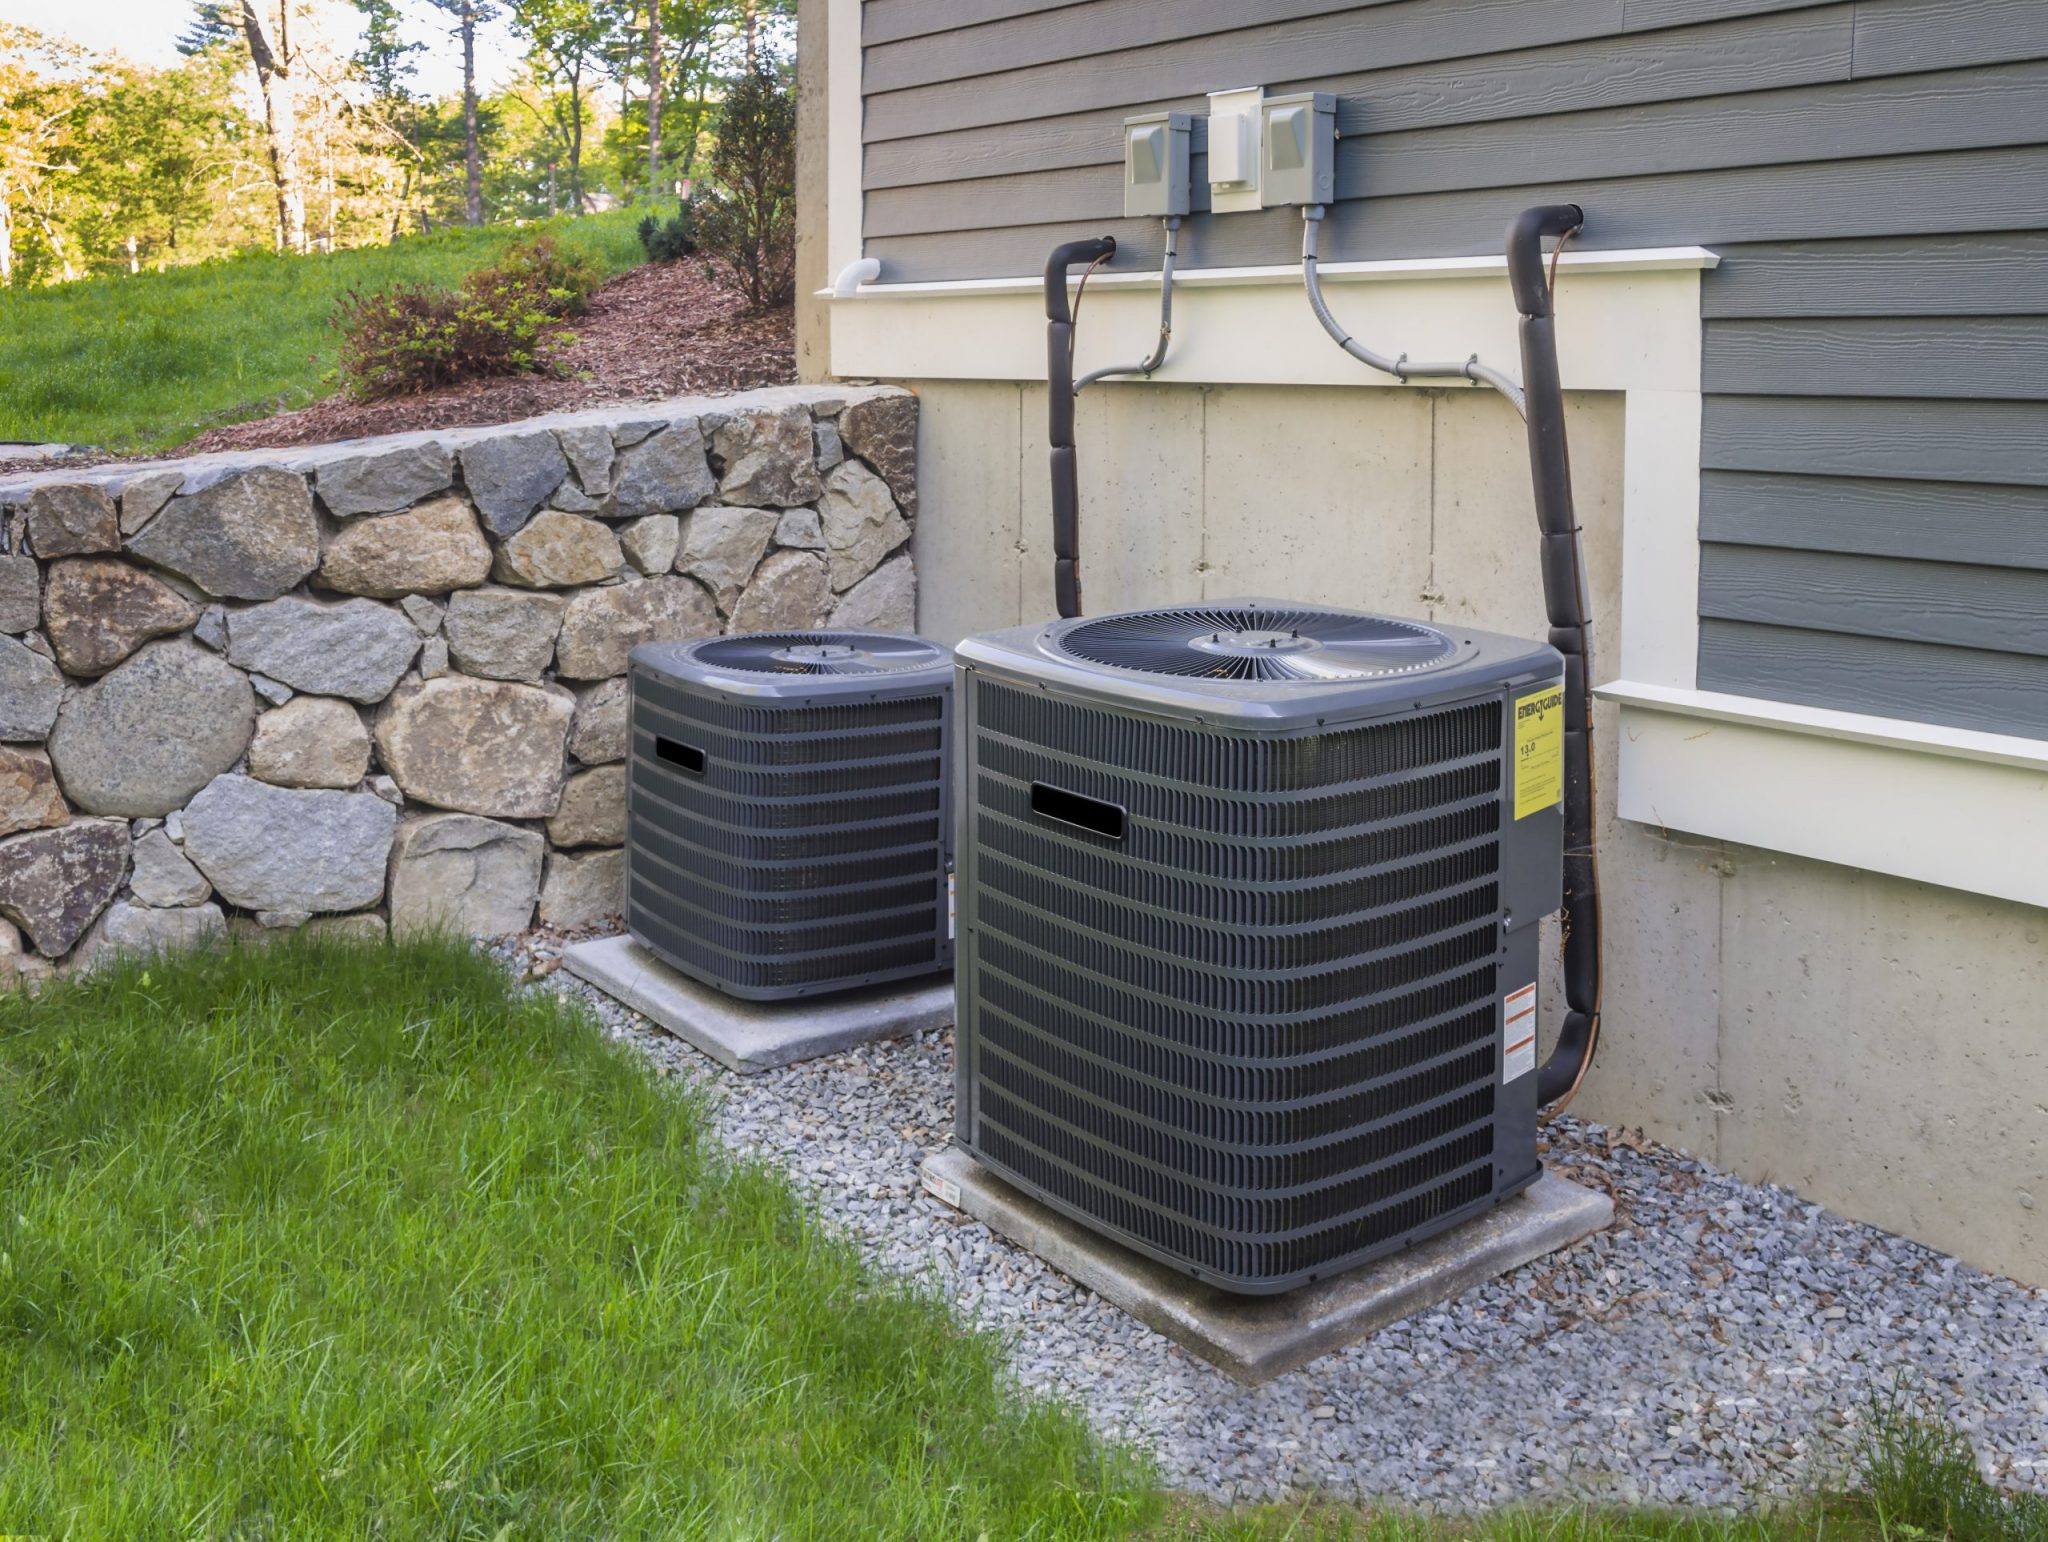 Two HVAC units beside a house in a yard